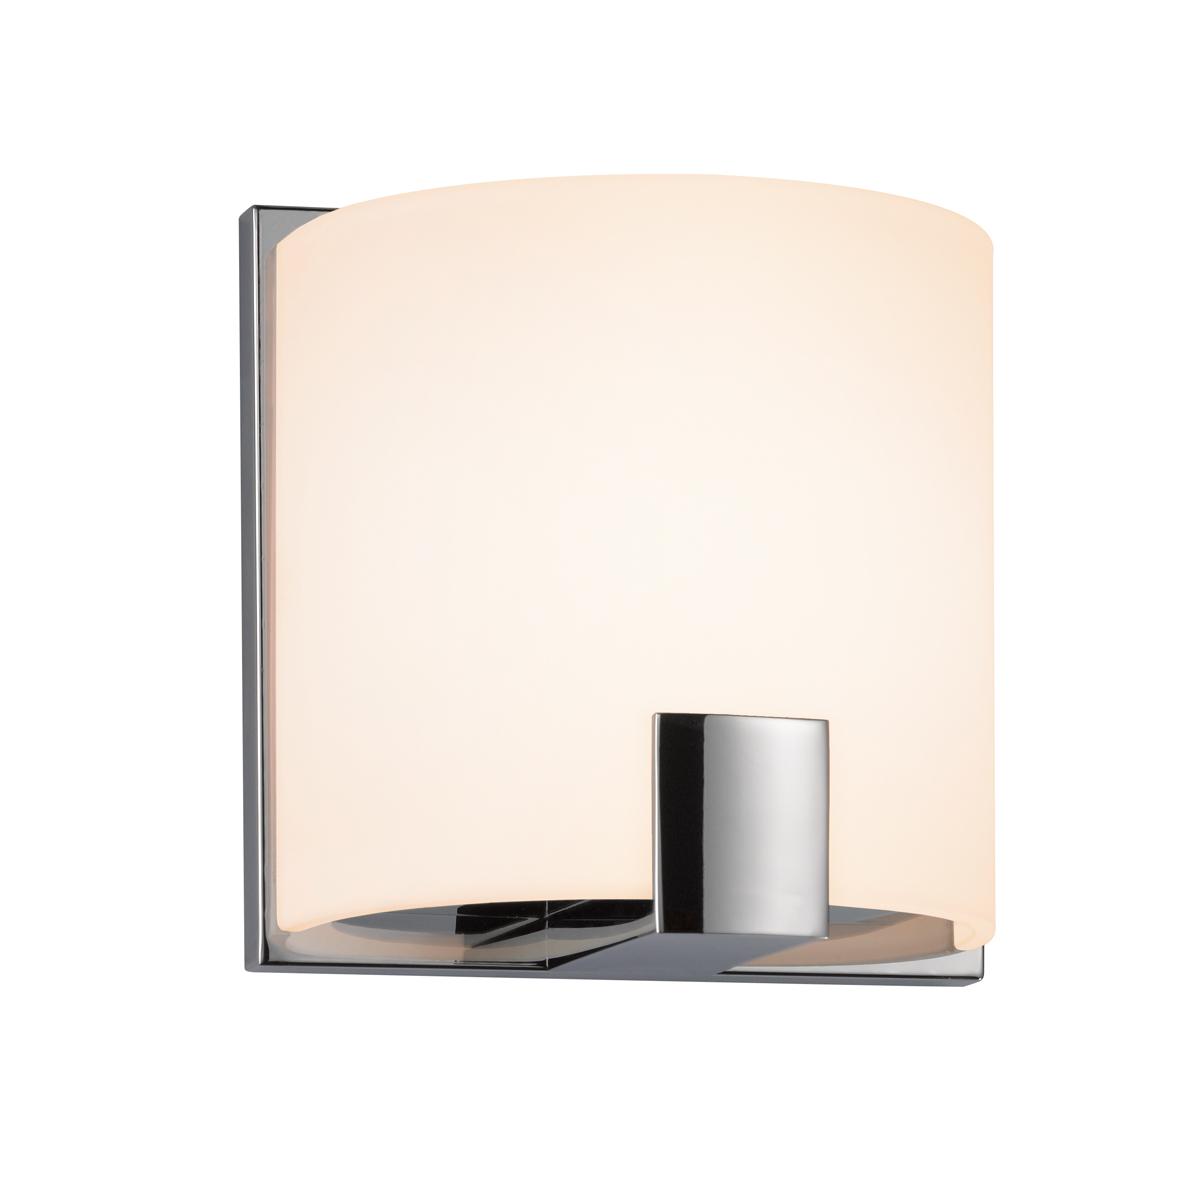 Sonneman Lighting (3891.01) C-Shell 1-Light Sconce shown in Polished Chrome u0026 White Etched Glass ...